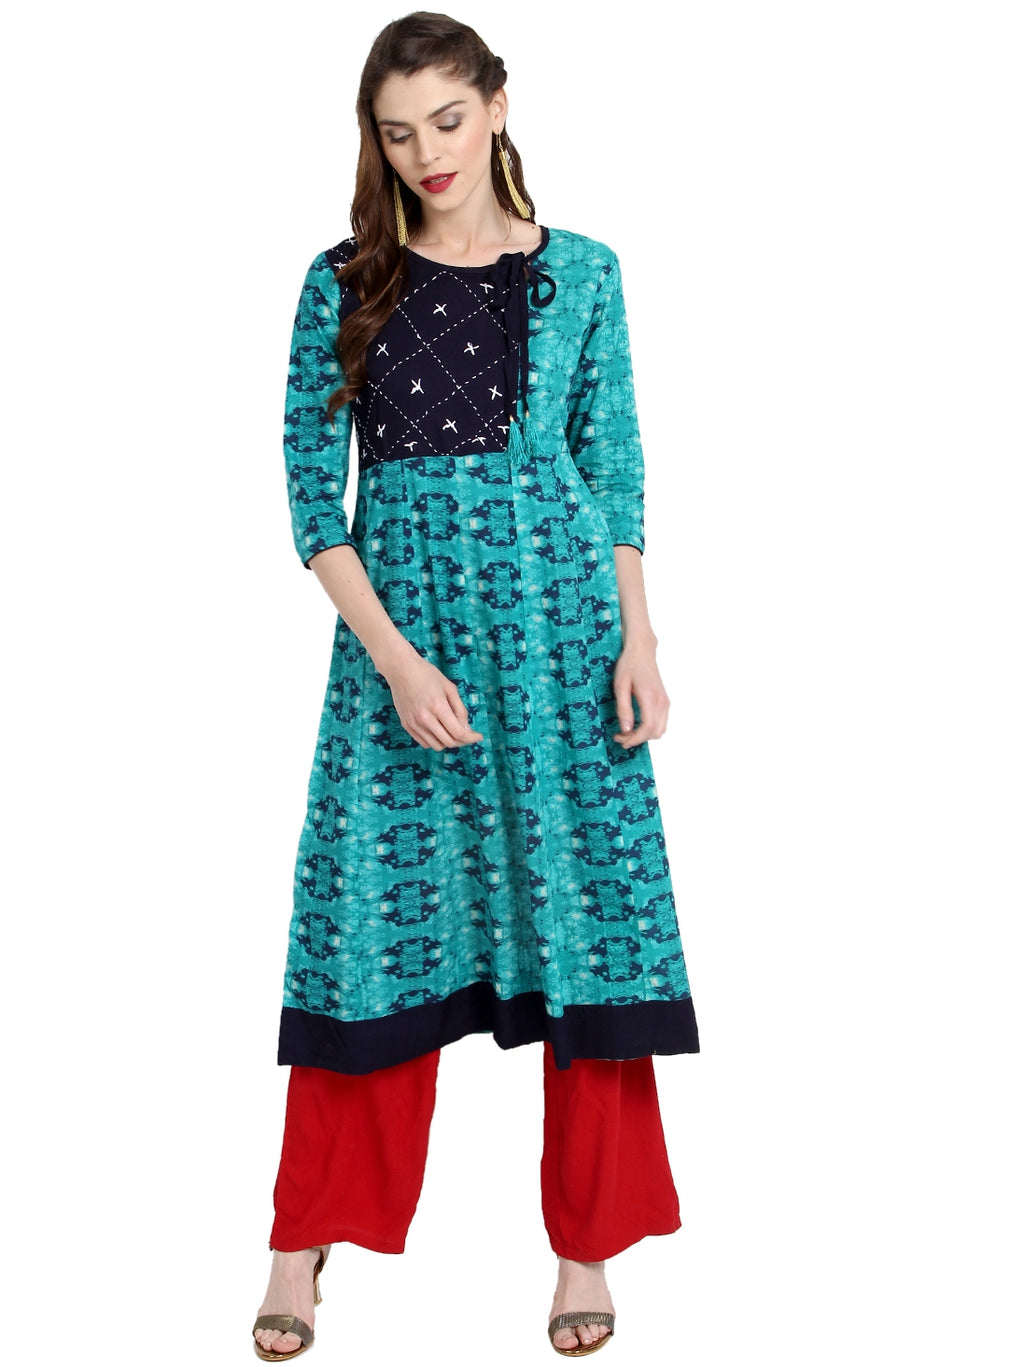 Firozi Color Cotton Readymade Party Wear Kurtis ( Sizes-36,38,40,42,44) Janasya Catlog SJ-10284